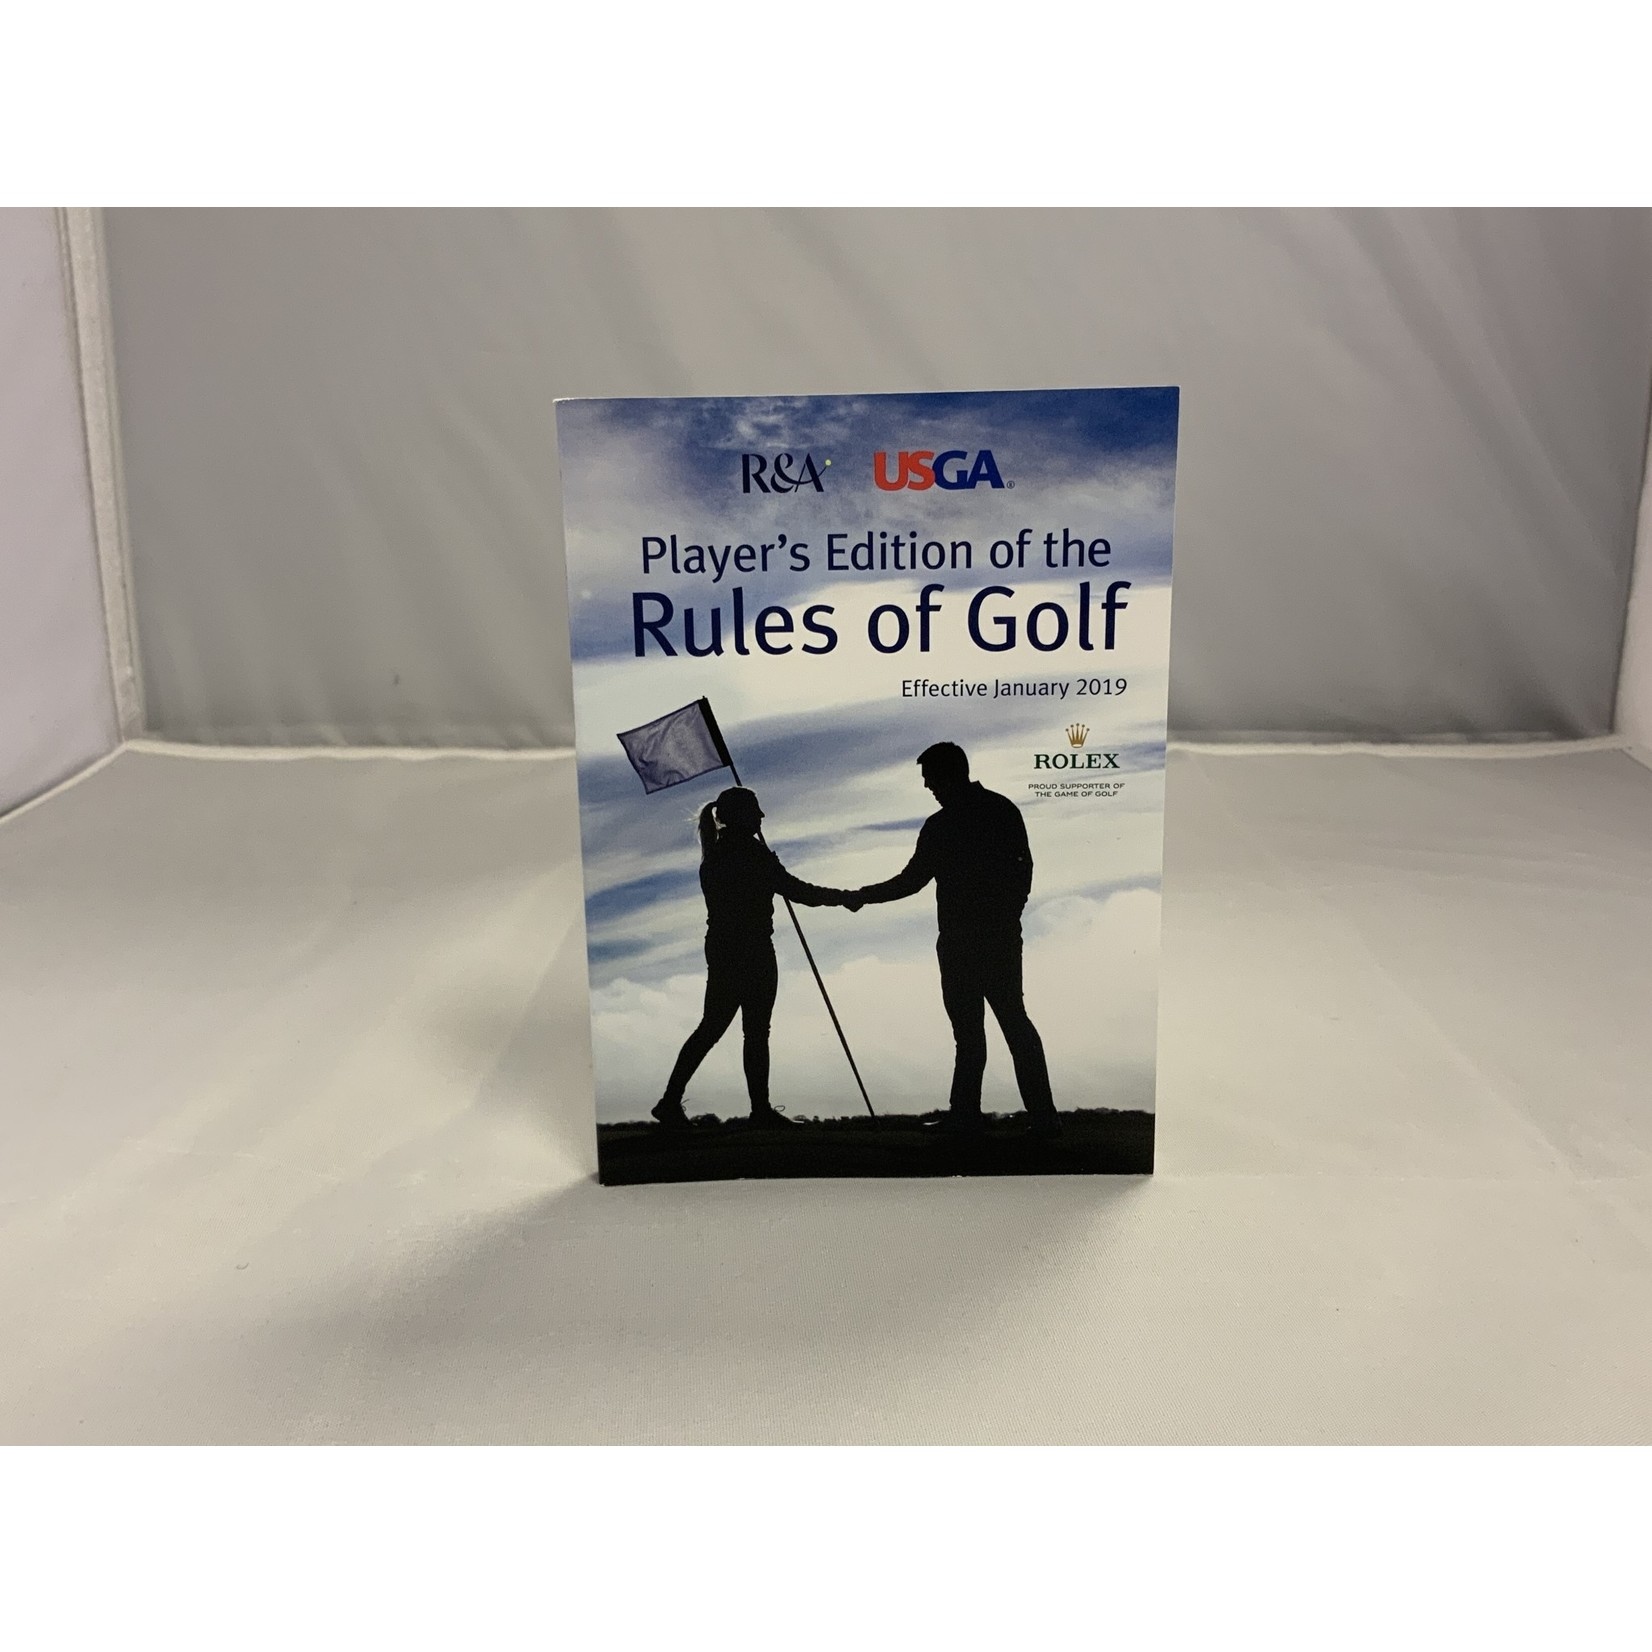 NGF - Rules of Golf